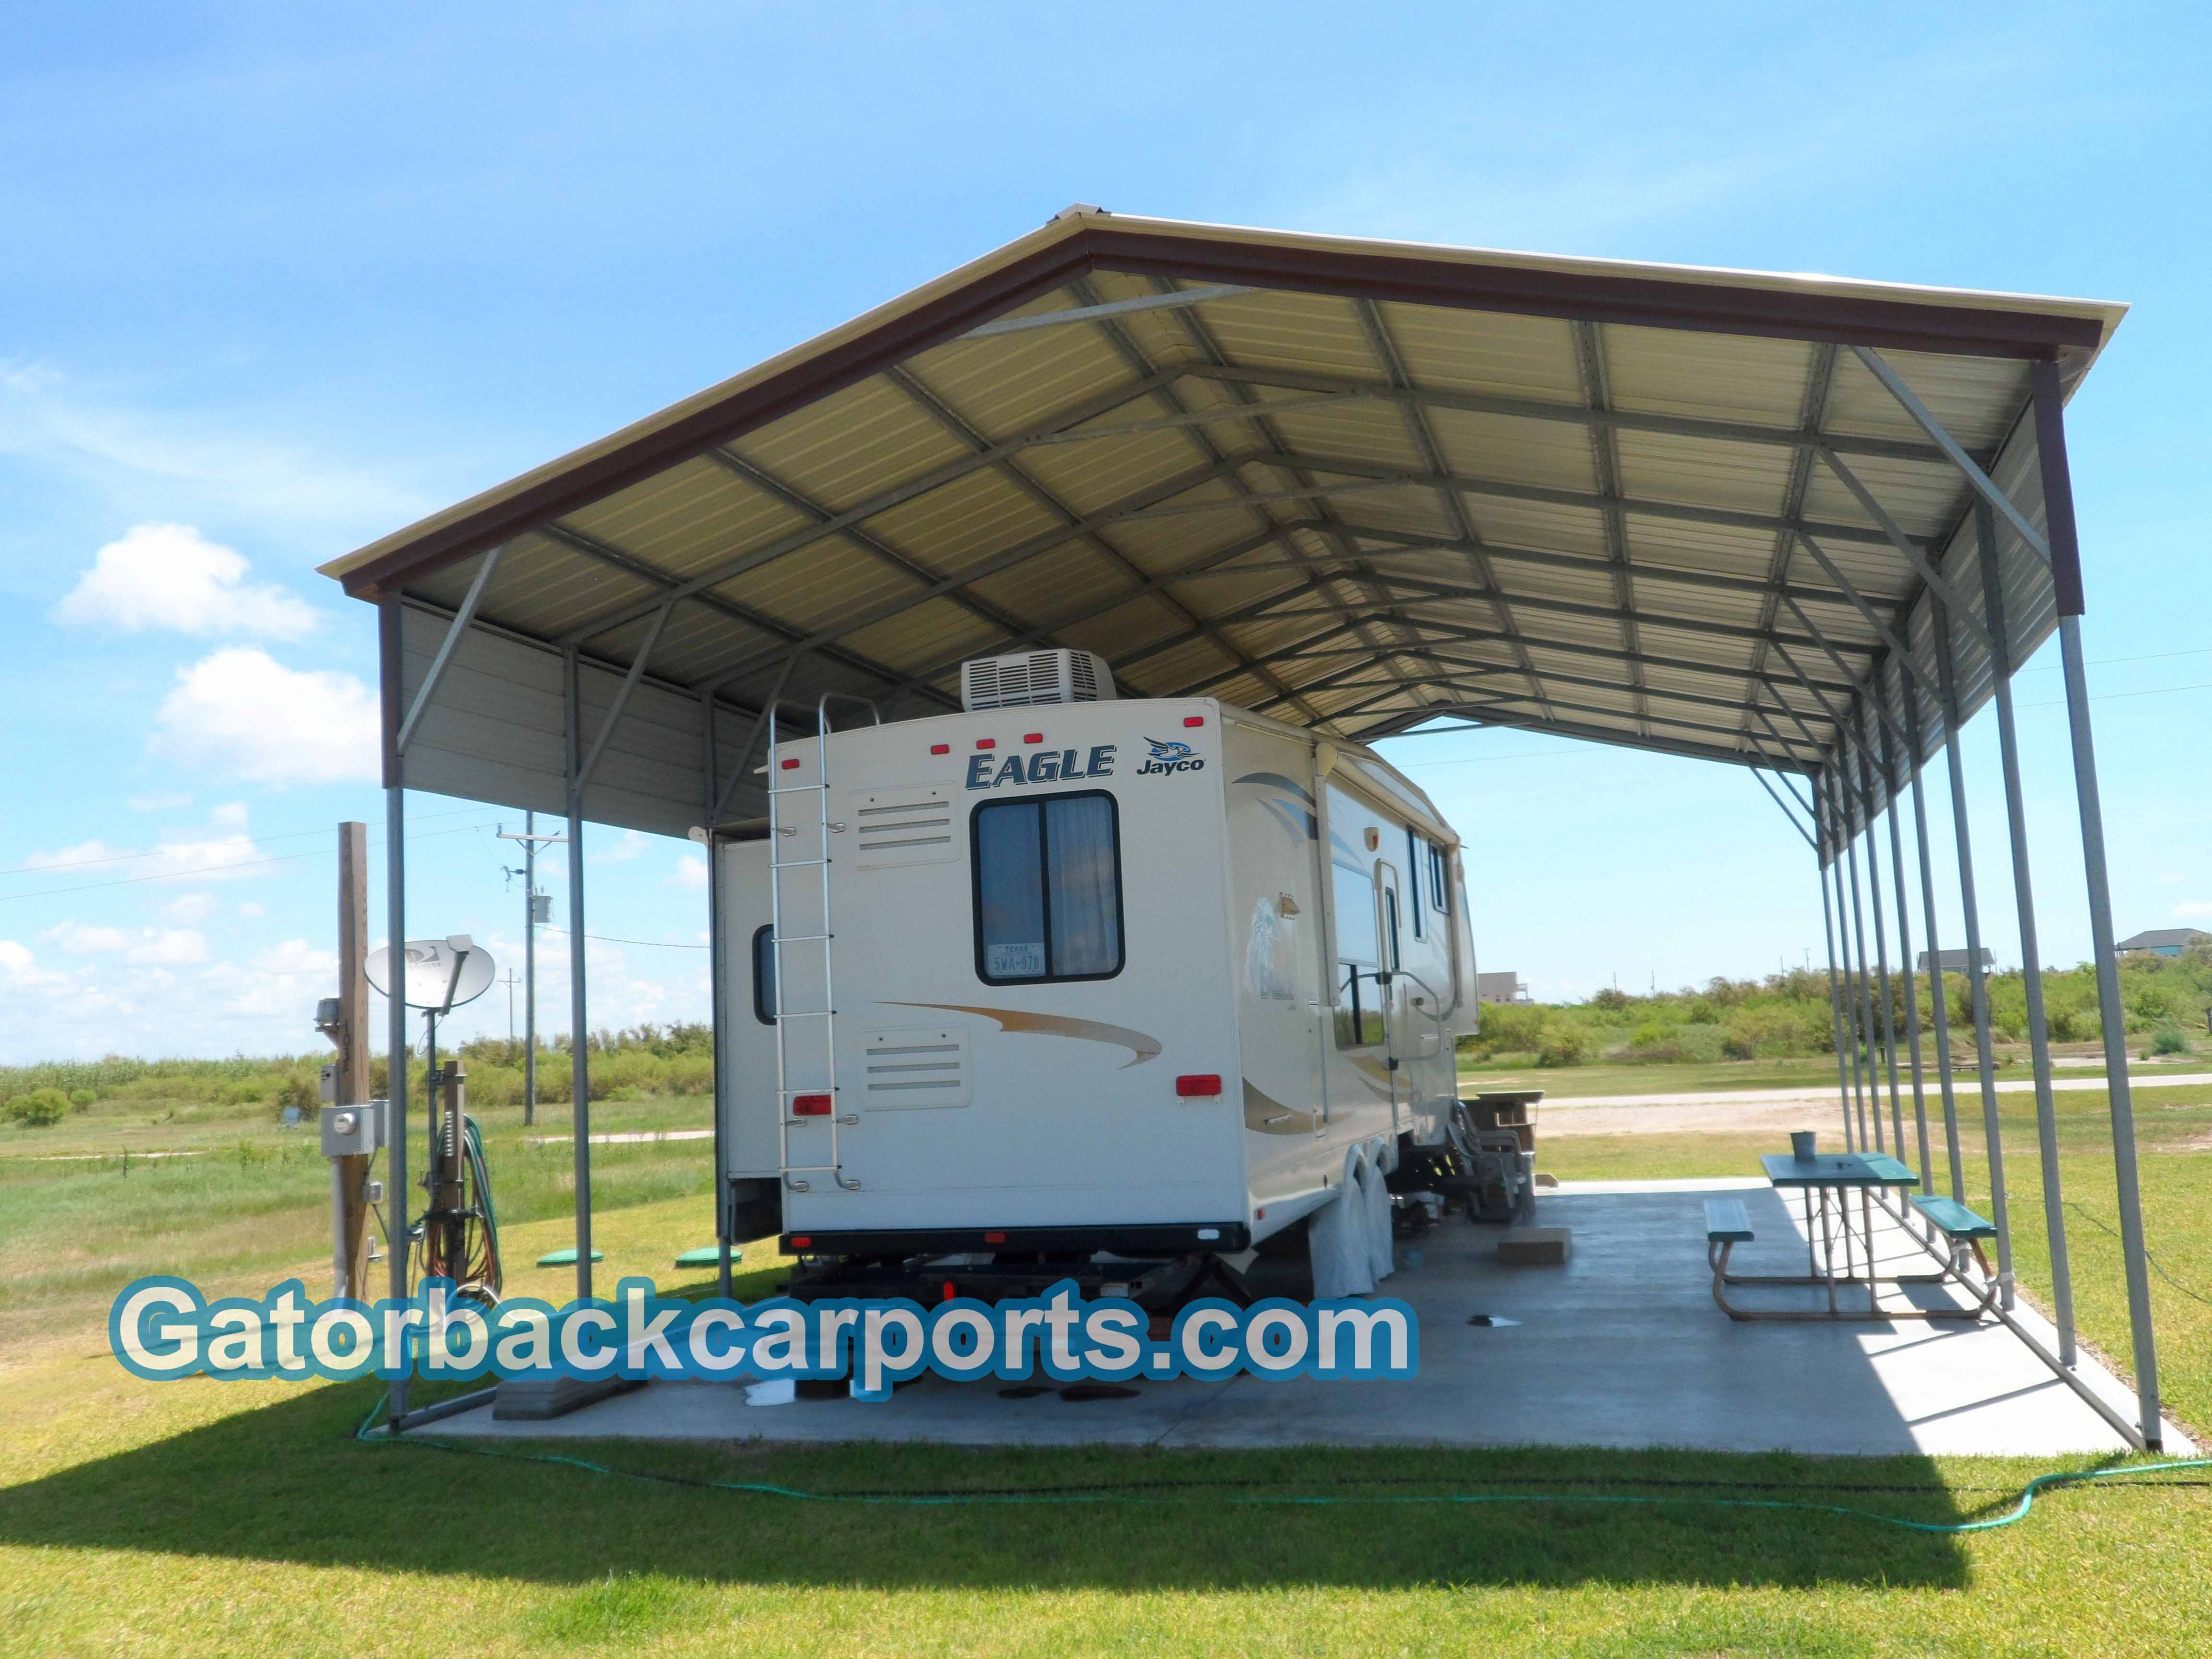 1517776414-collection-of-solutions-metal-buildings-wholesale-rv-carports-with-wholesale-carport-kits.jpg